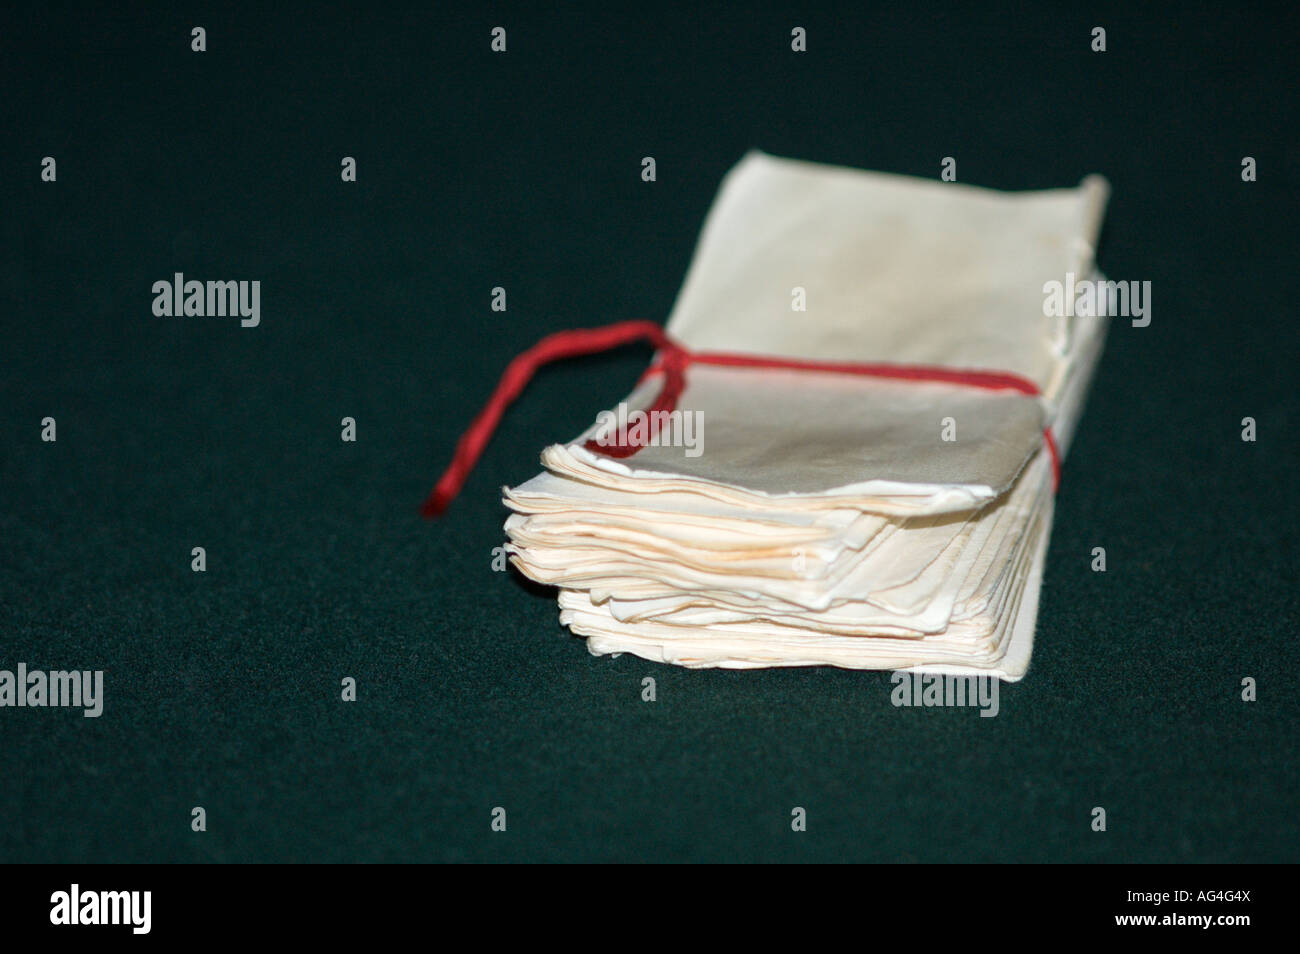 White Ballots on Green Felt Background Tied with a Red Cord - Stock Image